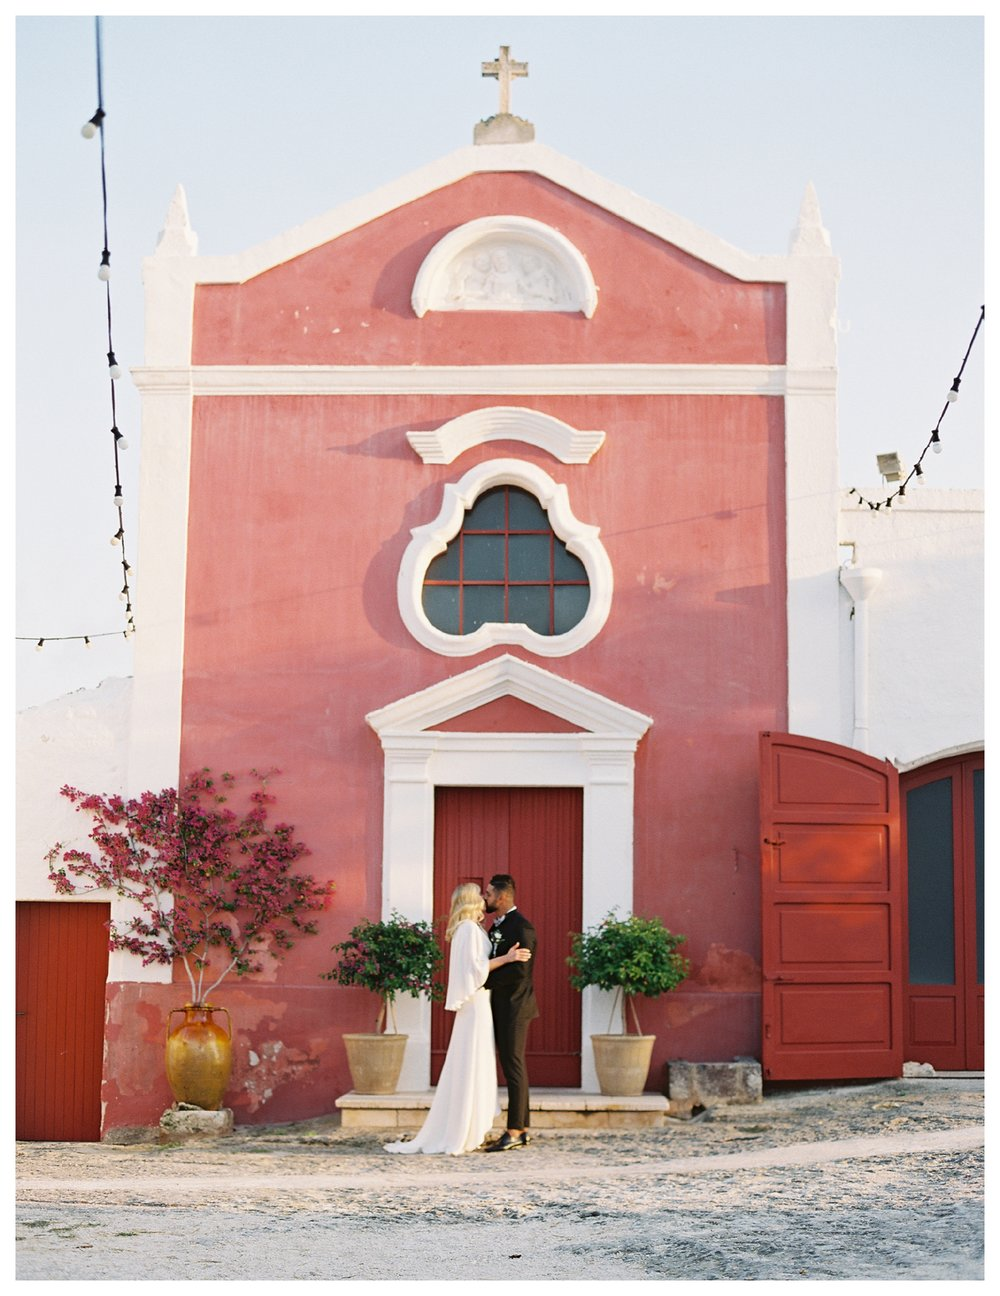 Masseria-torre-coccaro-wedding-photographer-italy-williamsburgphotostudios-015.jpg